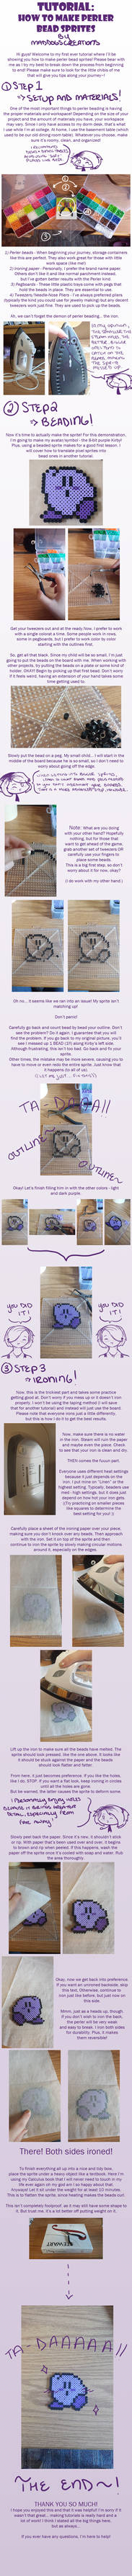 How to Make Perler Bead Sprites! - A Tutorial by MaddogsCreations on